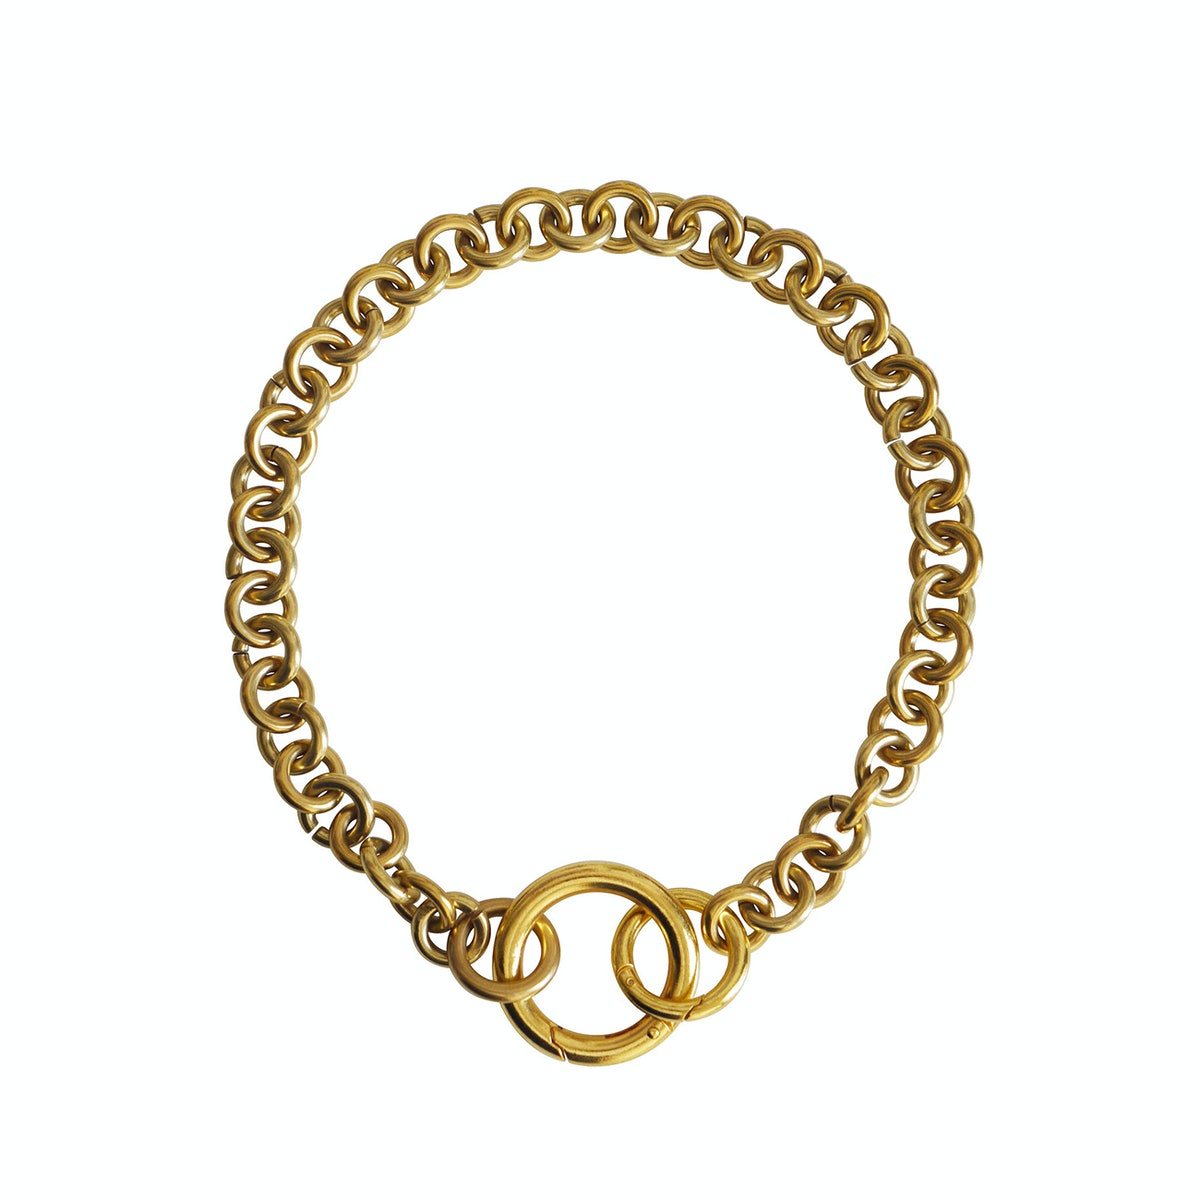 Laura Lombardi Fede Necklace